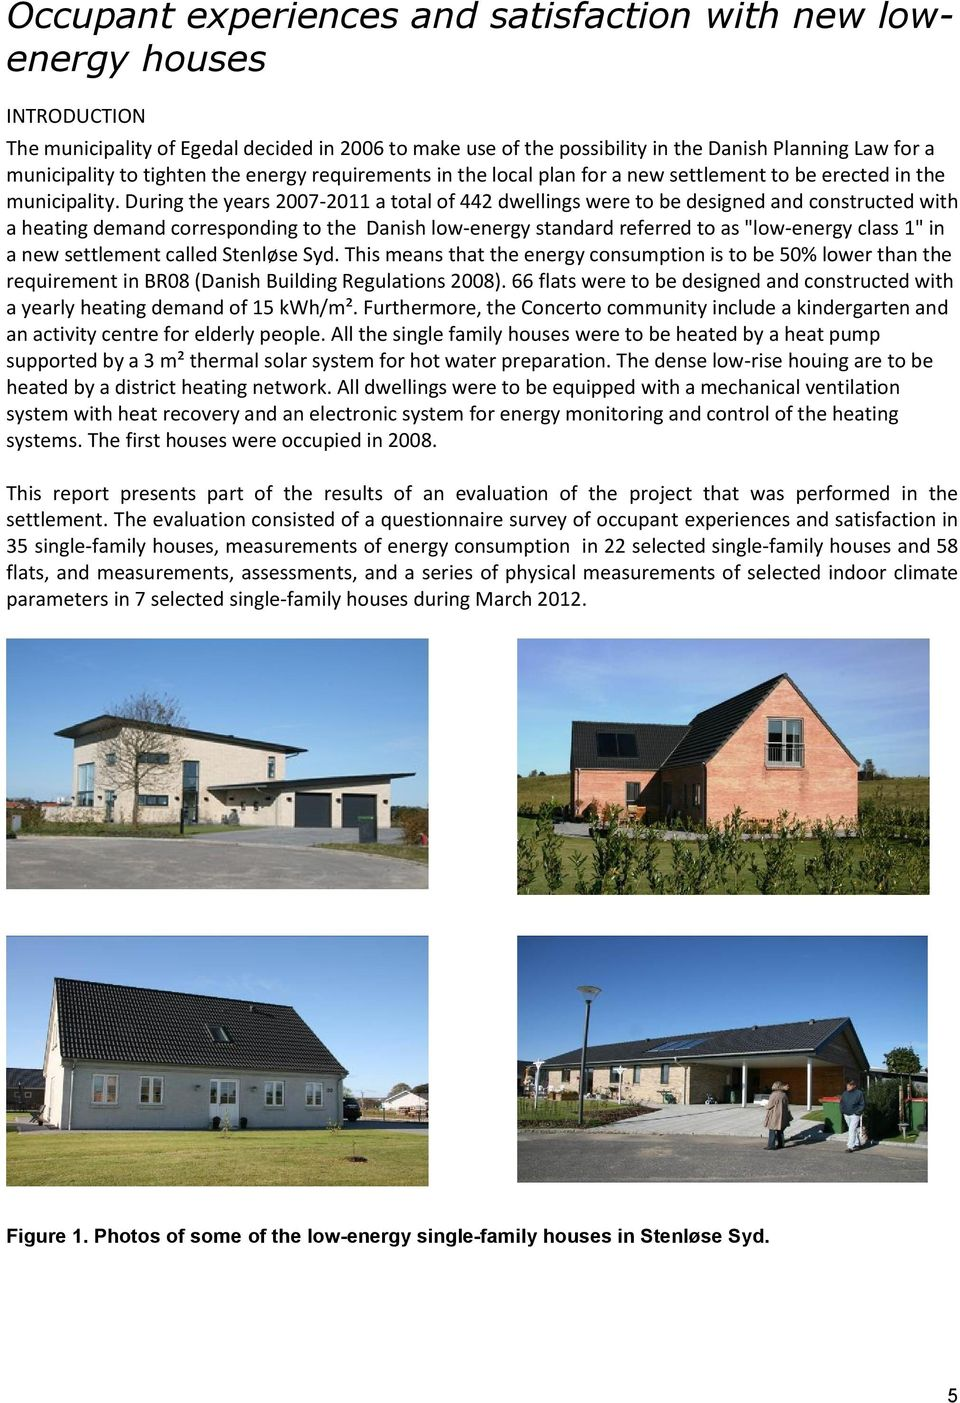 "During the years 2007-2011 a total of 442 dwellings were to be designed and constructed with a heating demand corresponding to the Danish low-energy standard referred to as ""low-energy class 1"" in a"